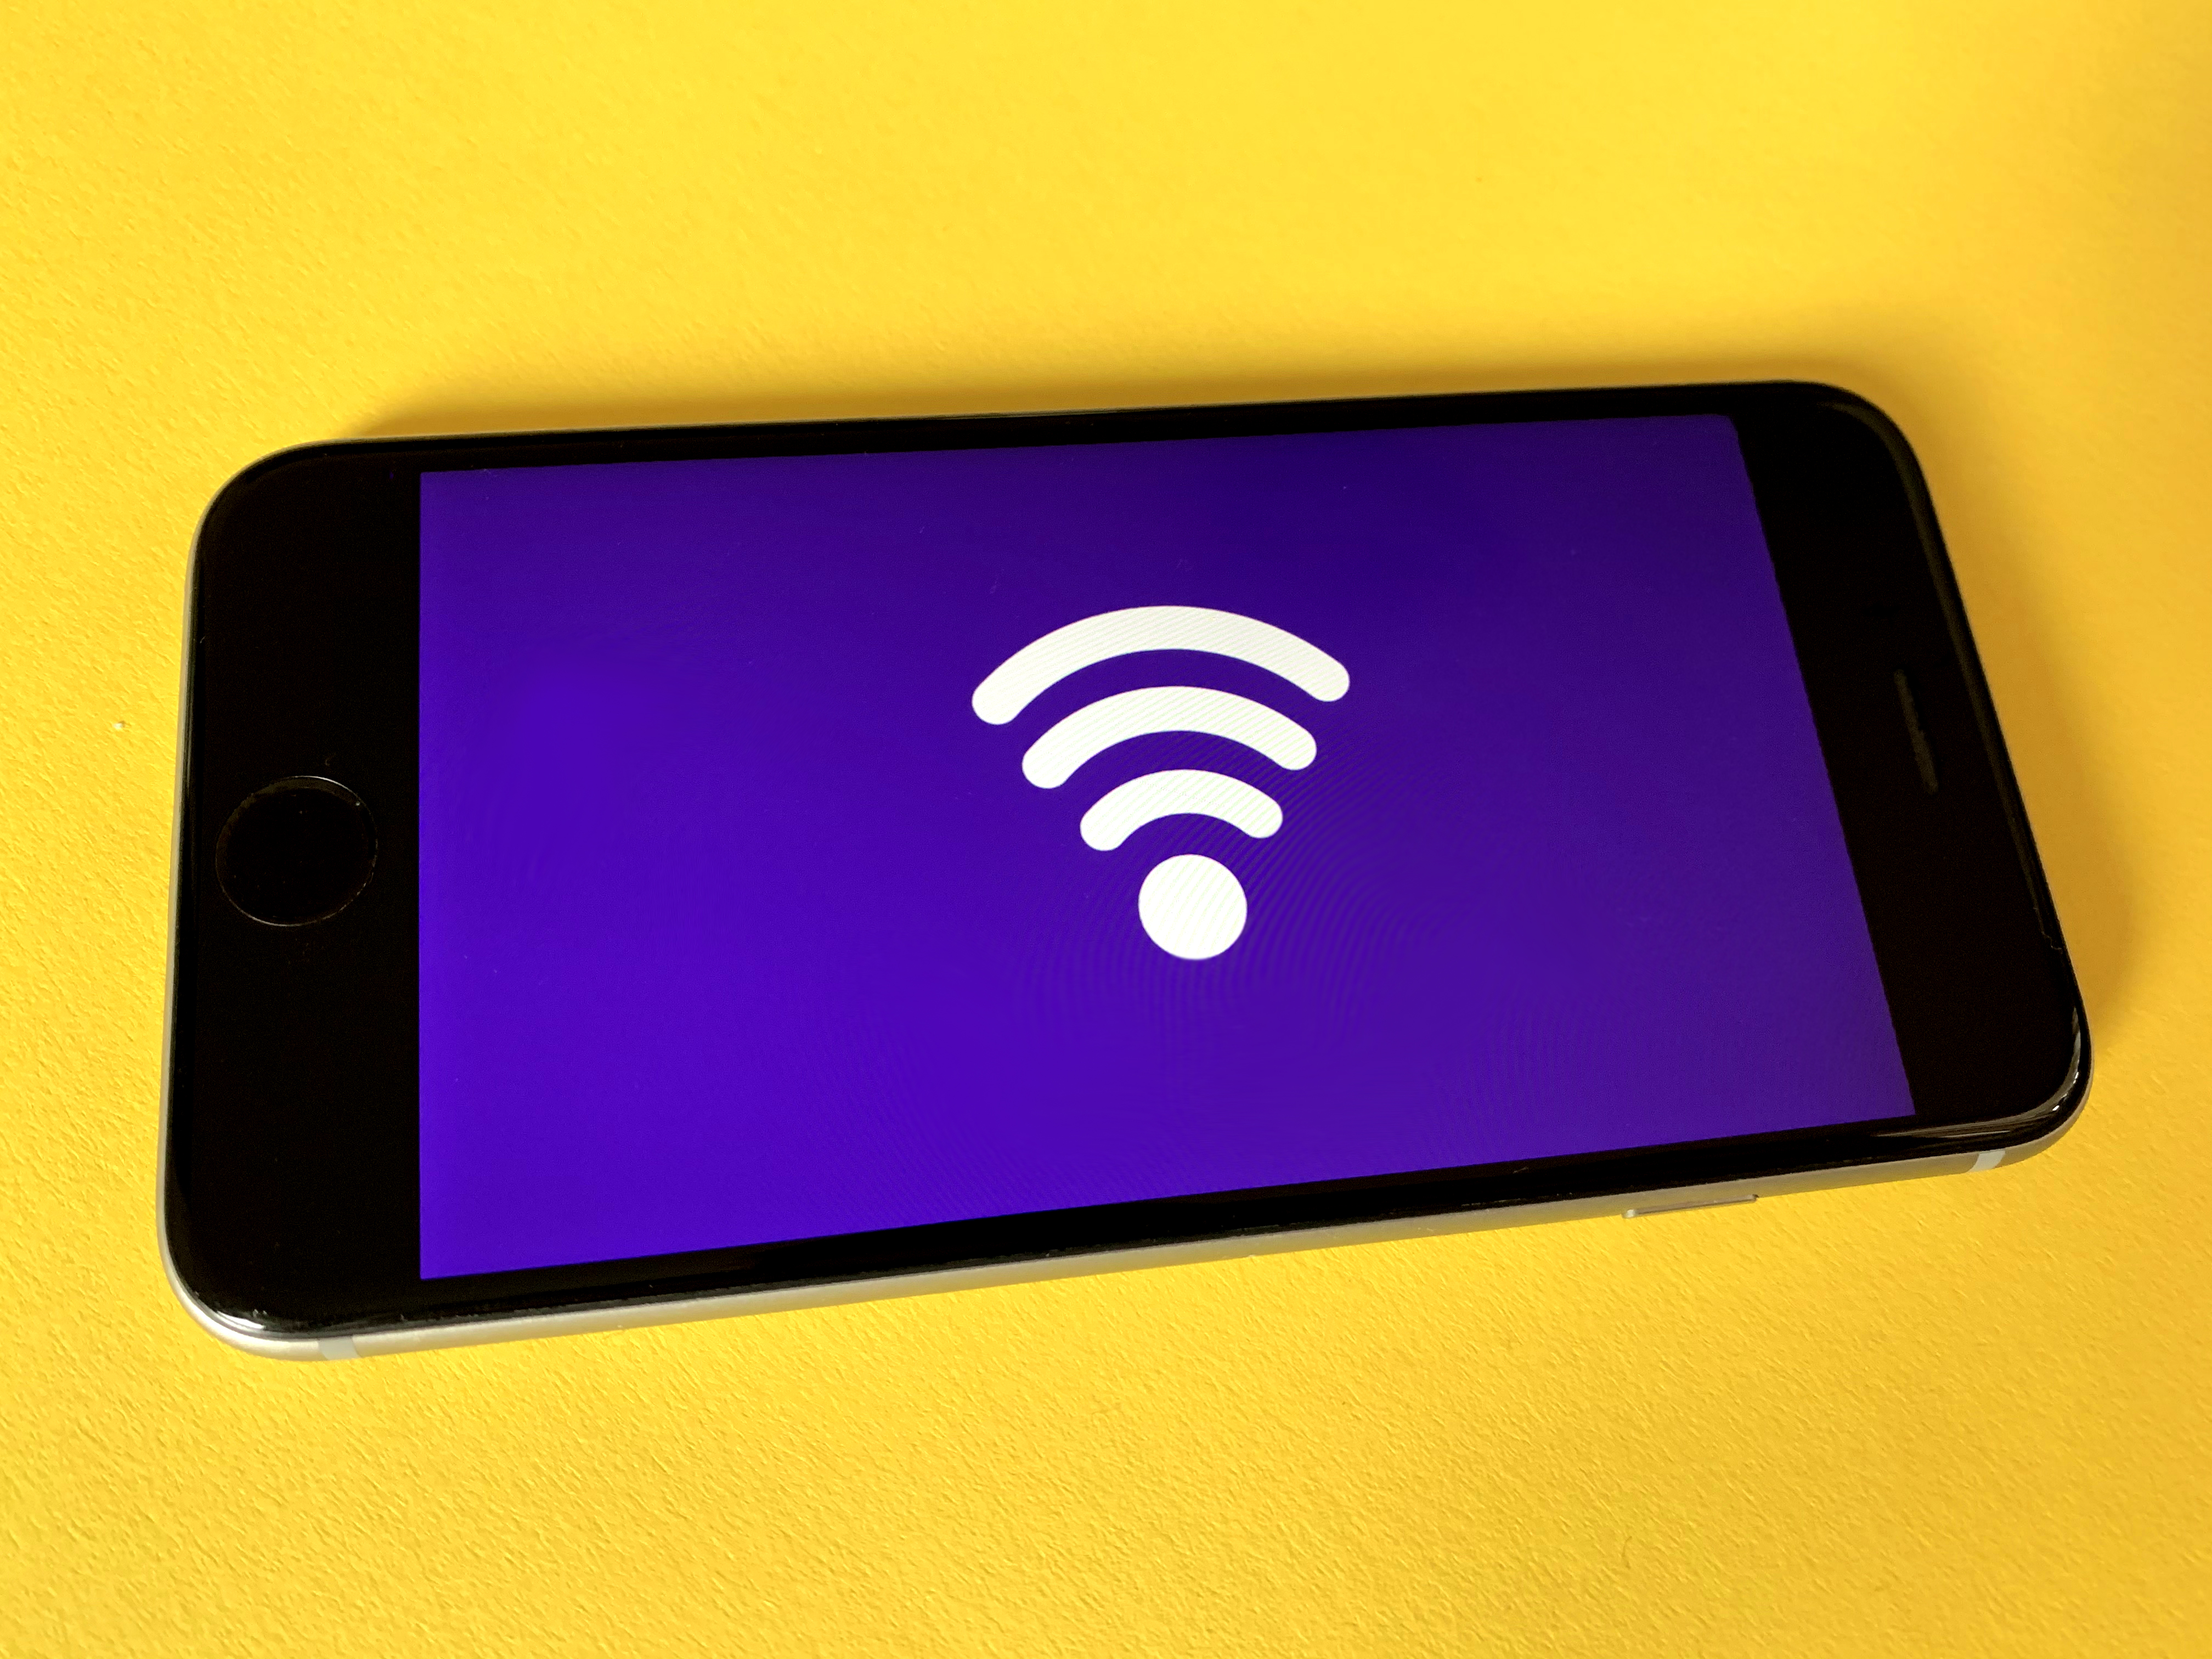 Wi-Fi Access Increasing In Several States